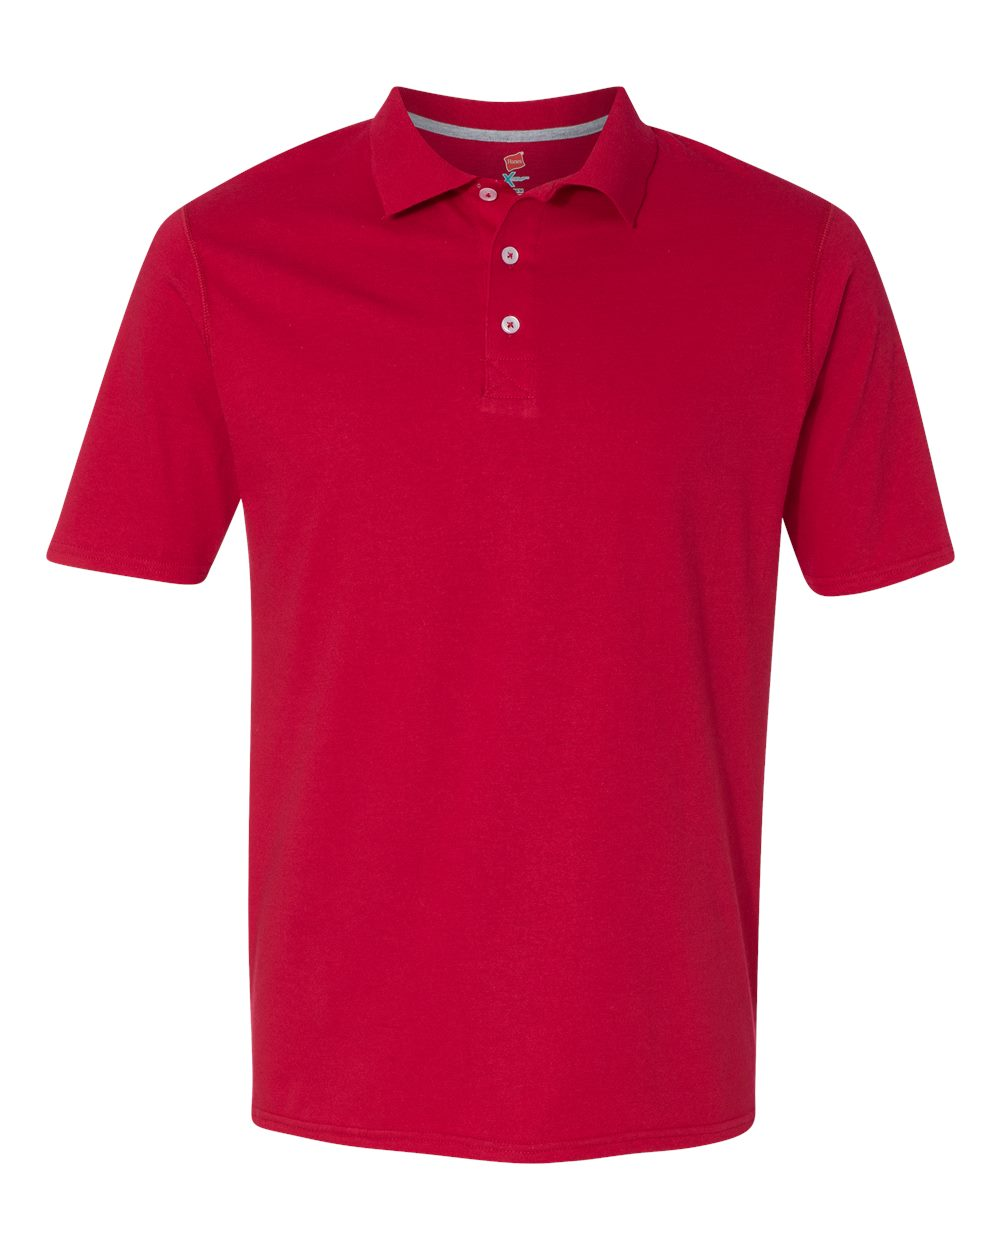 Hanes x temp sport polo shirt embroidery for Polo shirts with embroidery